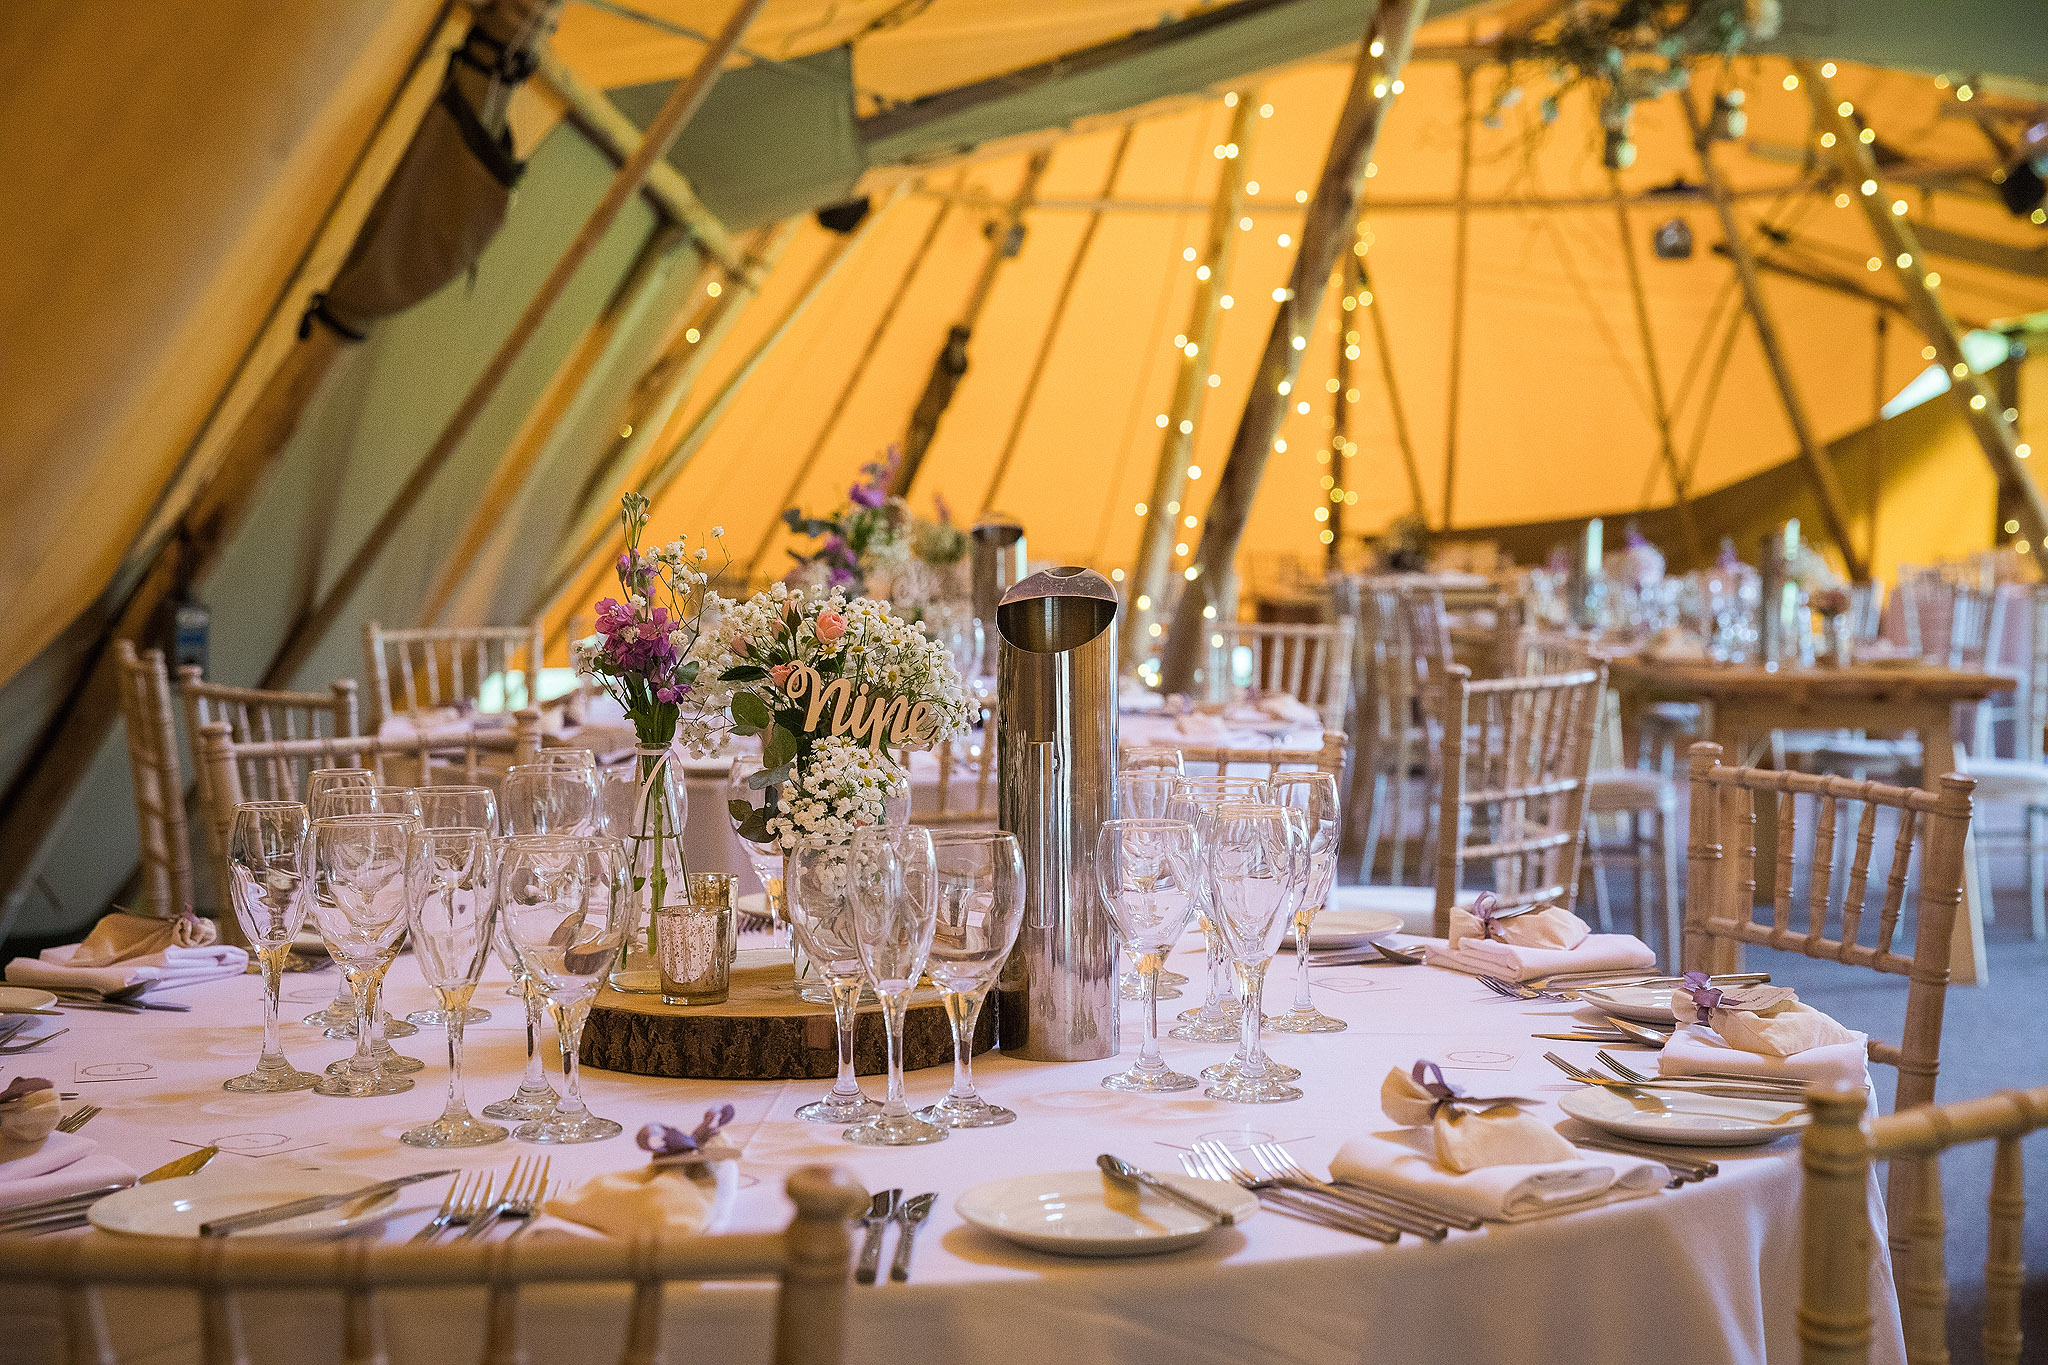 Wedding photography at The Gardens in Yalding, Kent